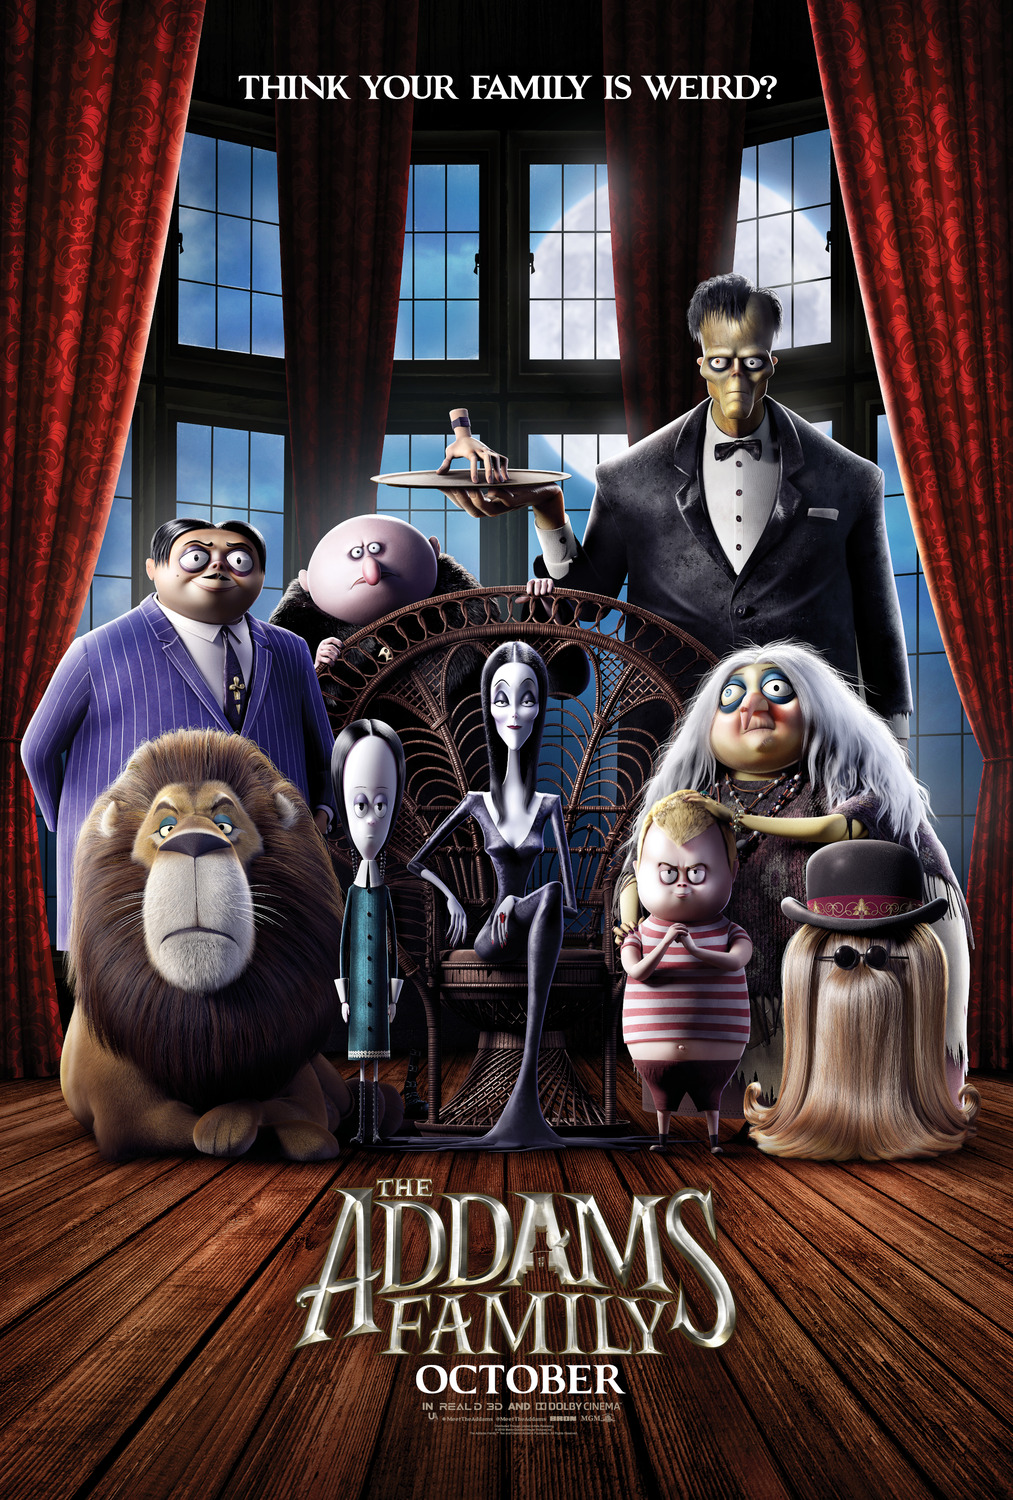 The Addams Family film review: spooky AND ooky